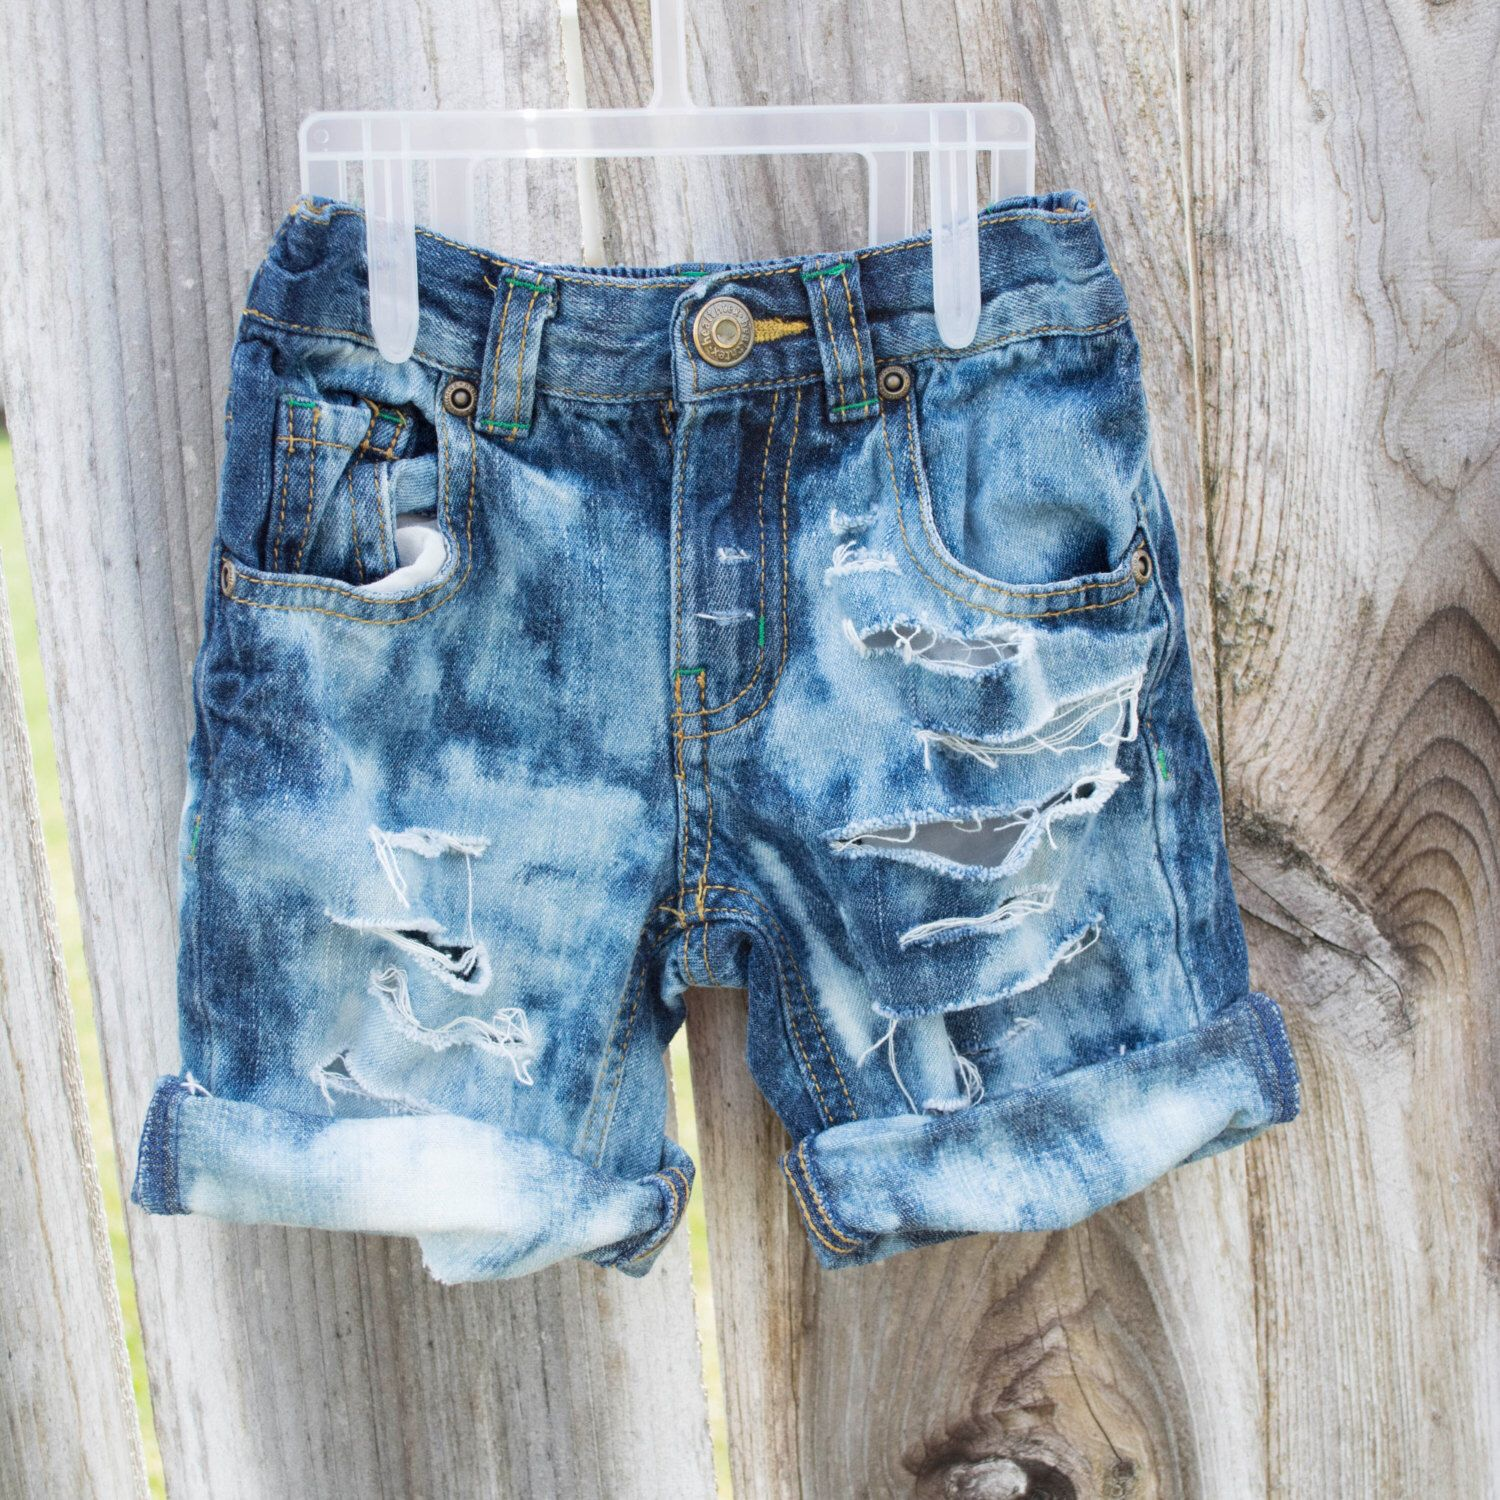 Boys Size 18 Months Distressed Denim Shorts | Shorts, Denim shorts ...